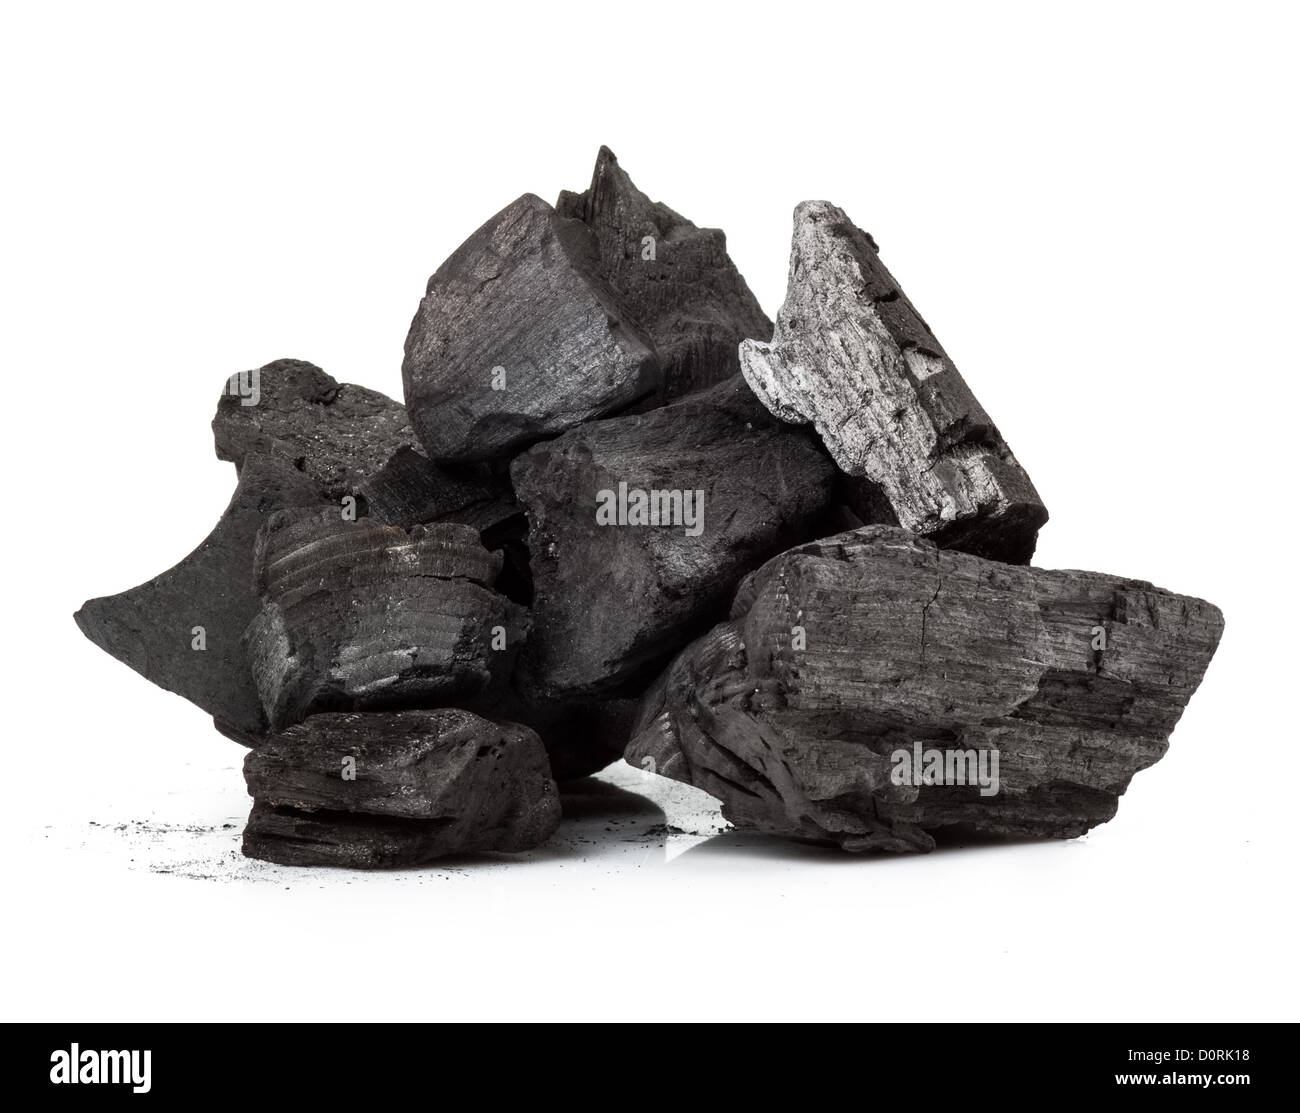 Piece of fractured wood coal isolated over white background - Stock Image